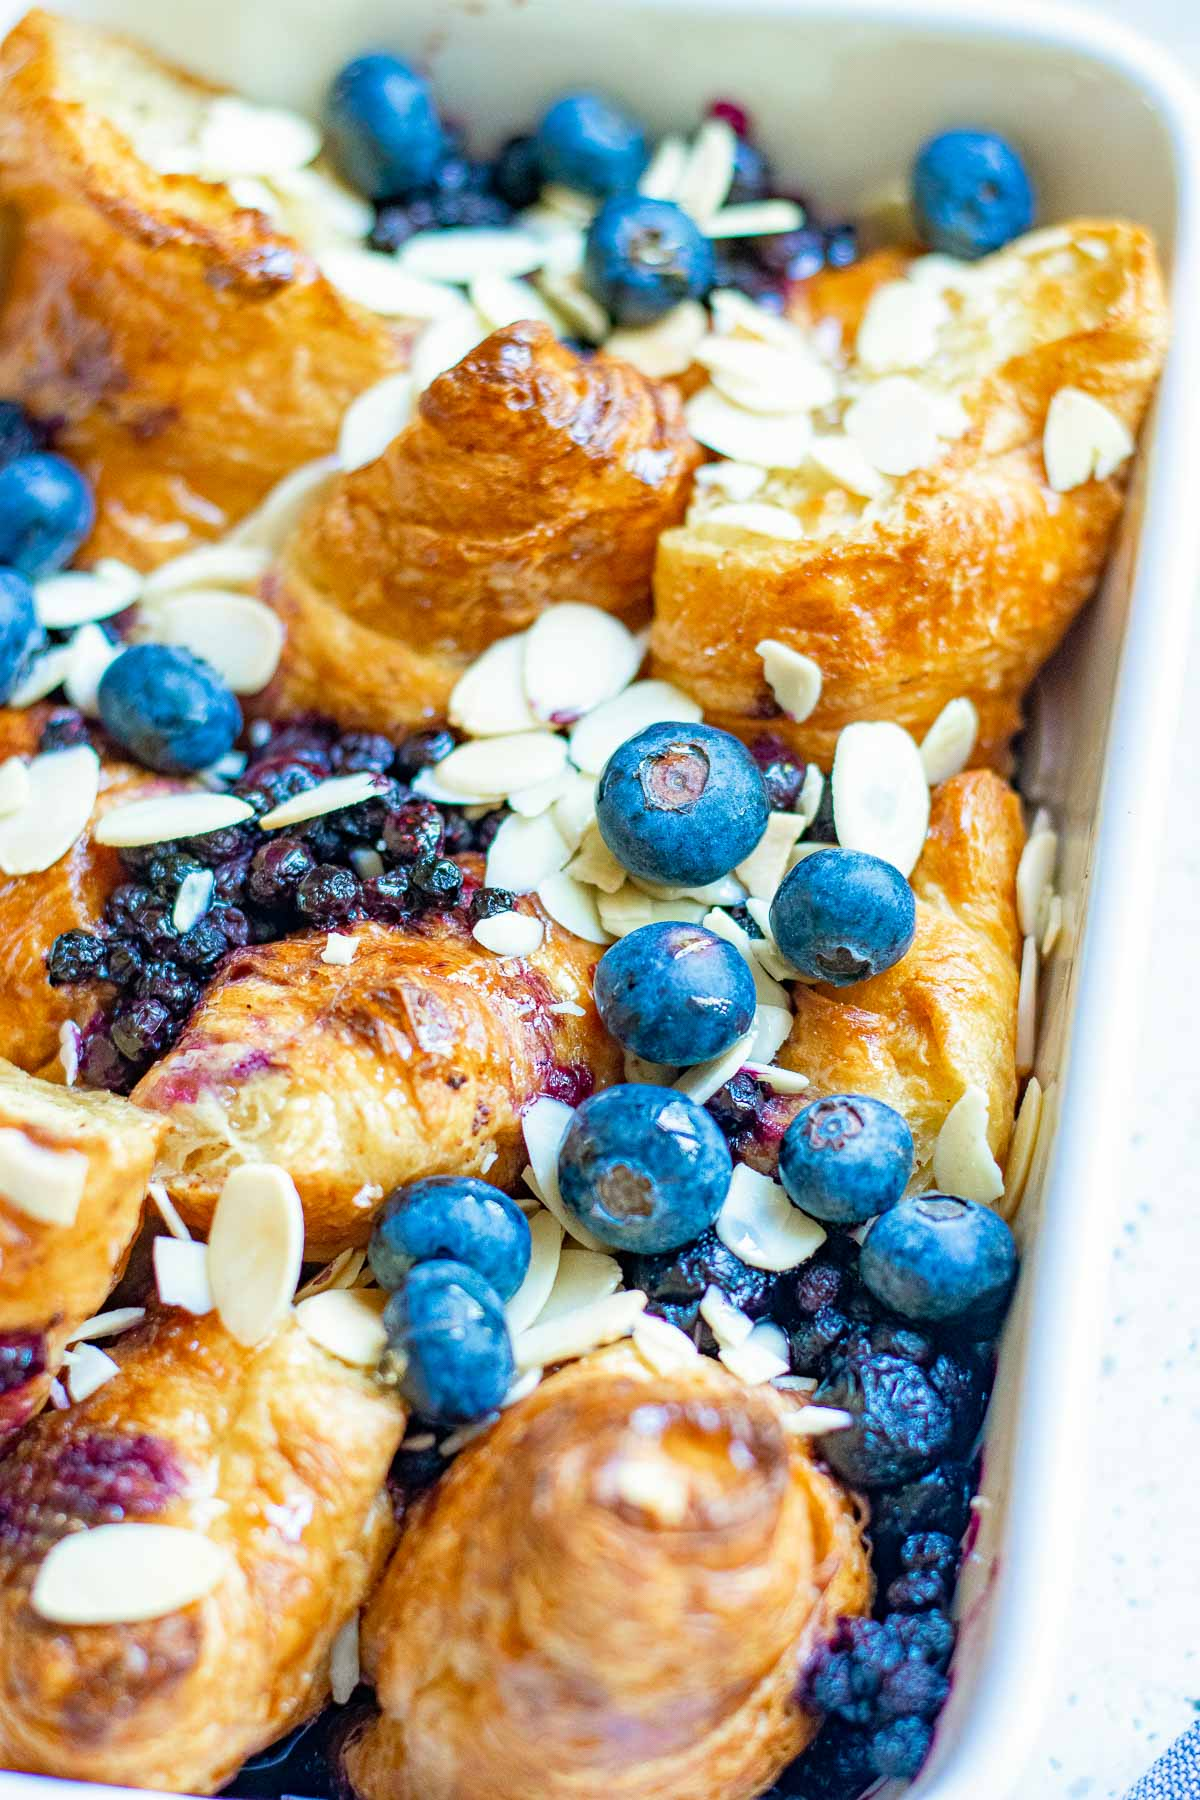 baked croissant french toast close up